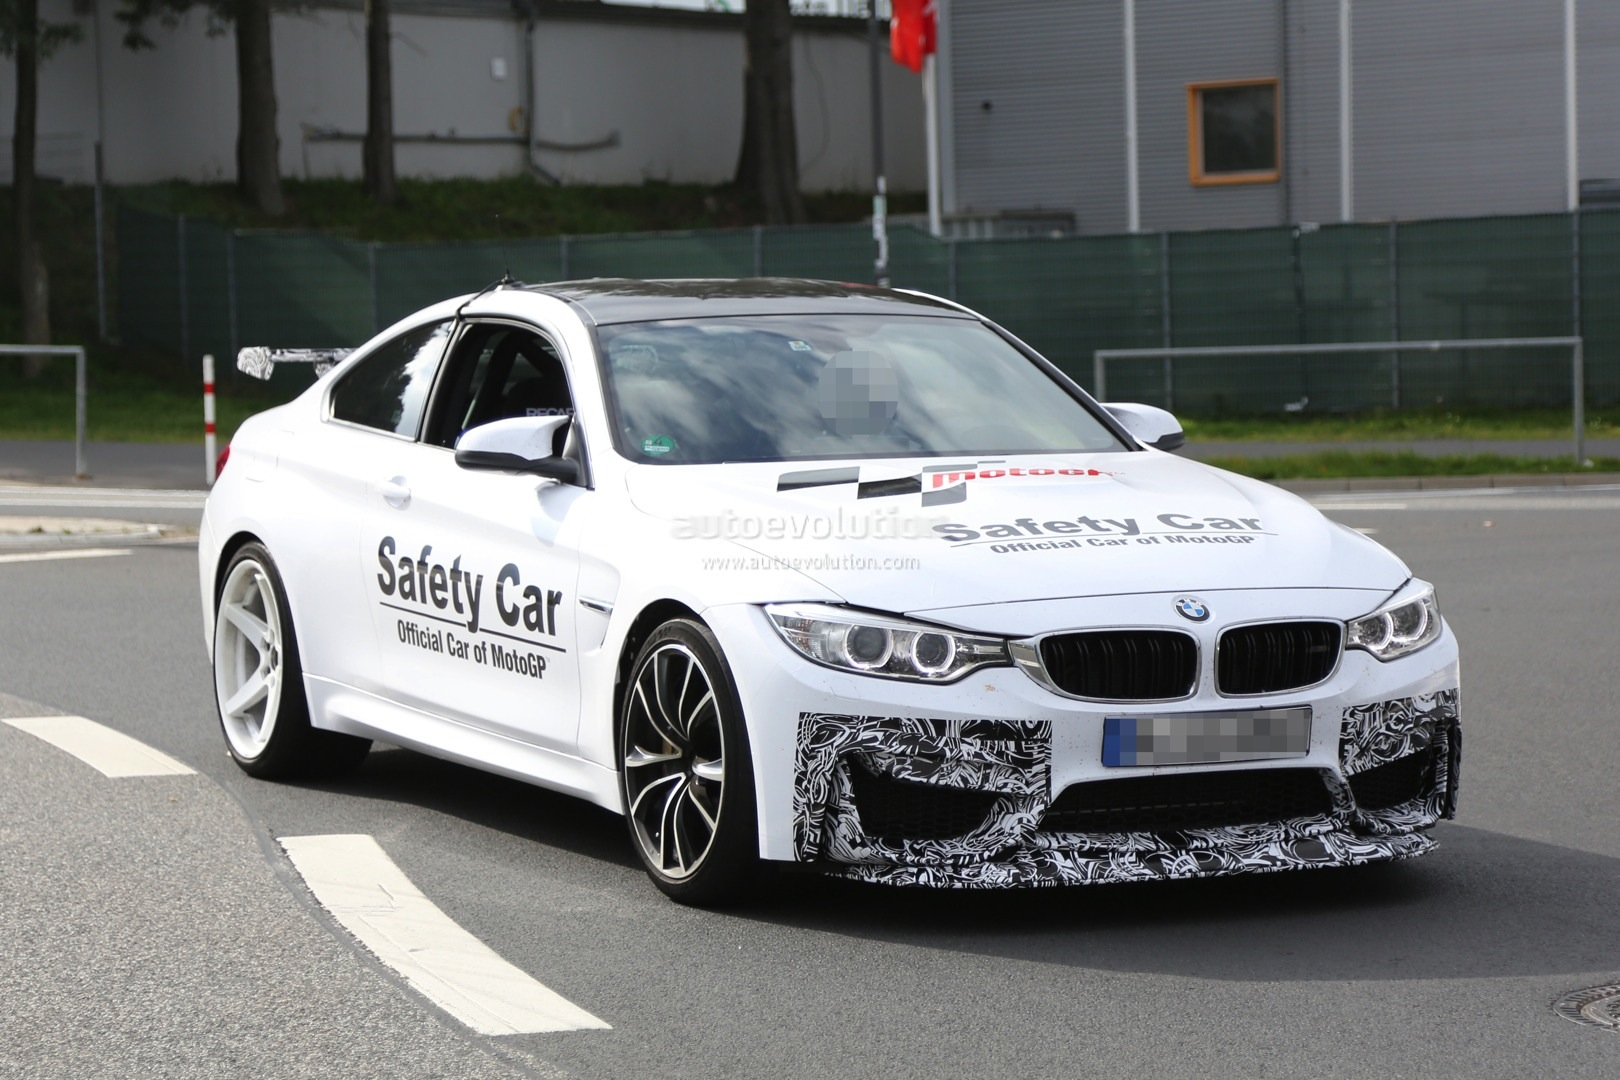 2016 Bmw M4 Gts Spied For The First Time Autoevolution